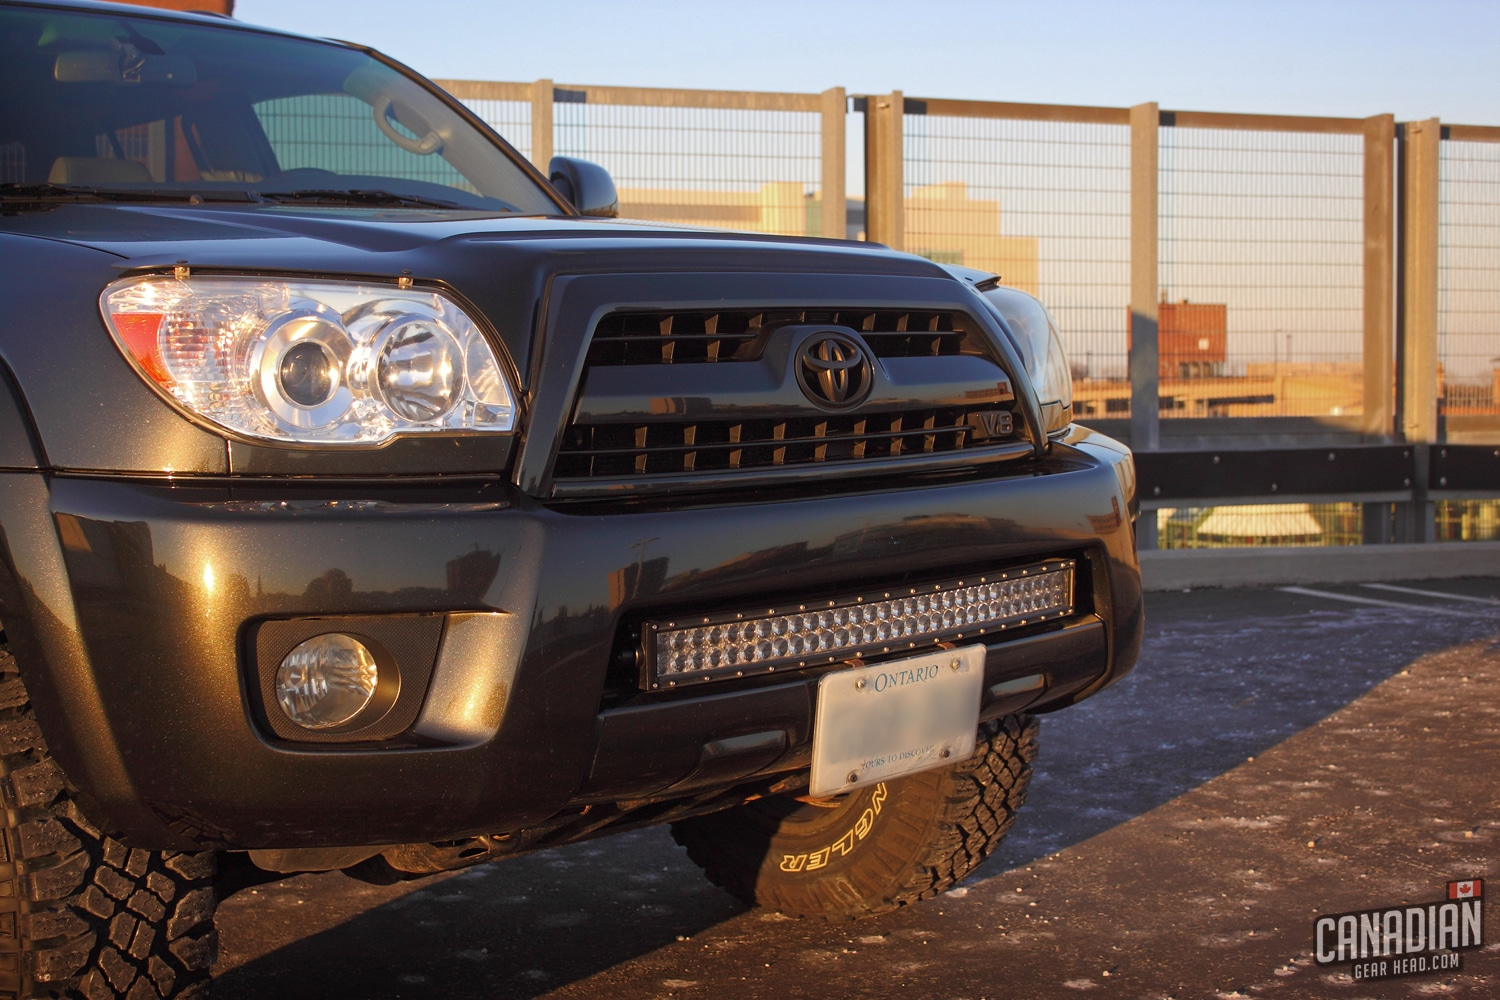 The Daily Grind: My 2007 Toyota 4runner